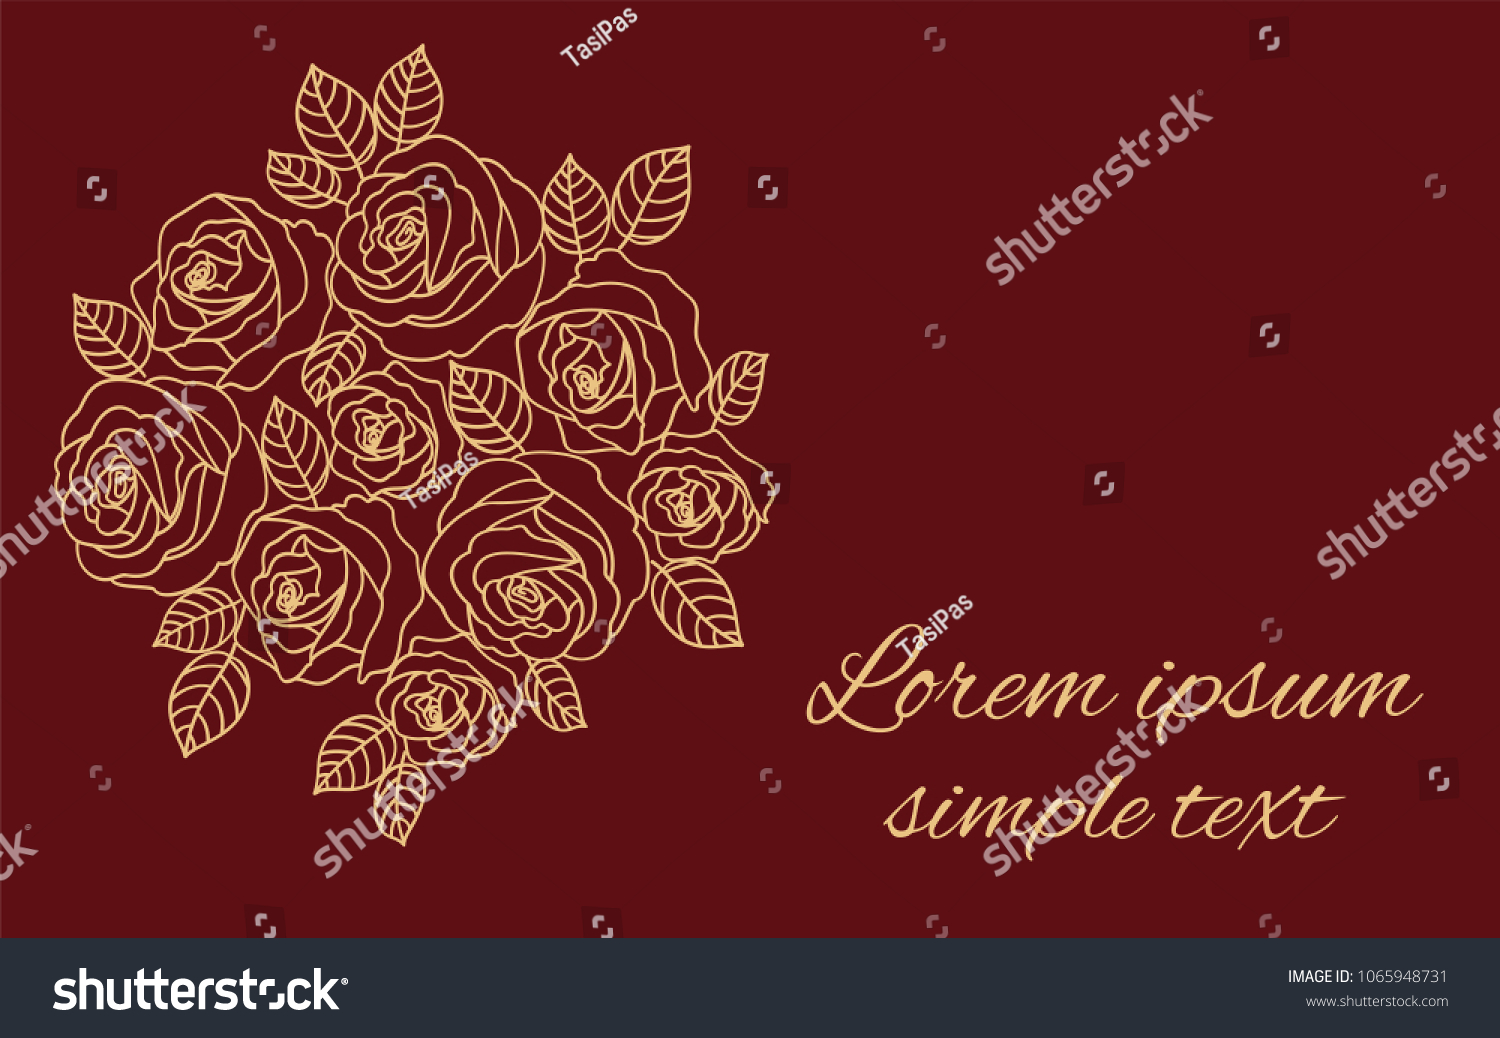 Vector Wedding Invitations Beige Outline Roses Stock Vector (Royalty ...